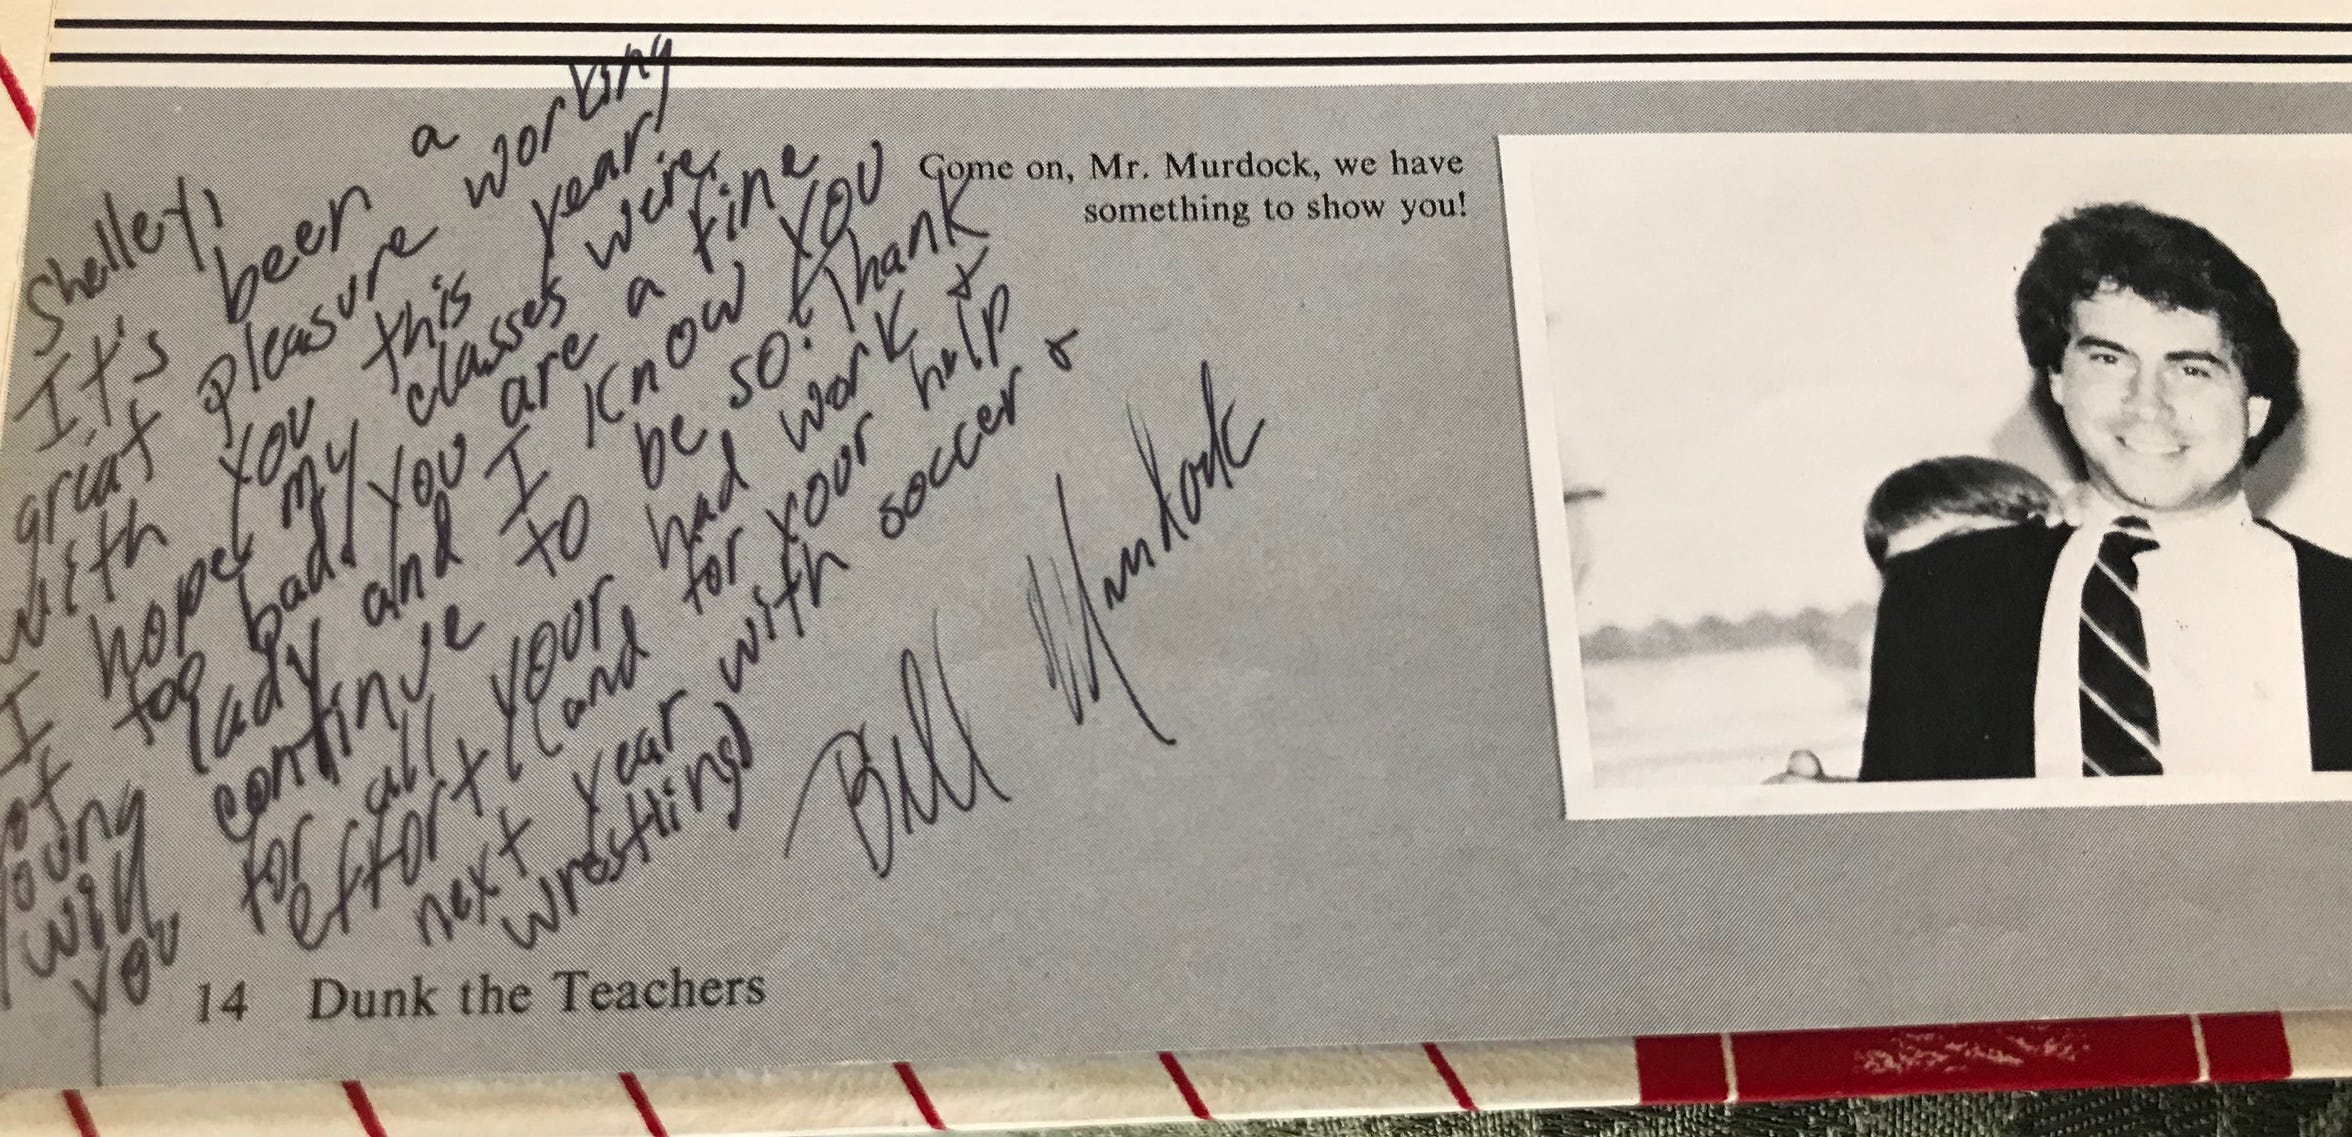 A note Bill Murdock wrote to Shelley Baldwin in her eighth-grade yearbook.